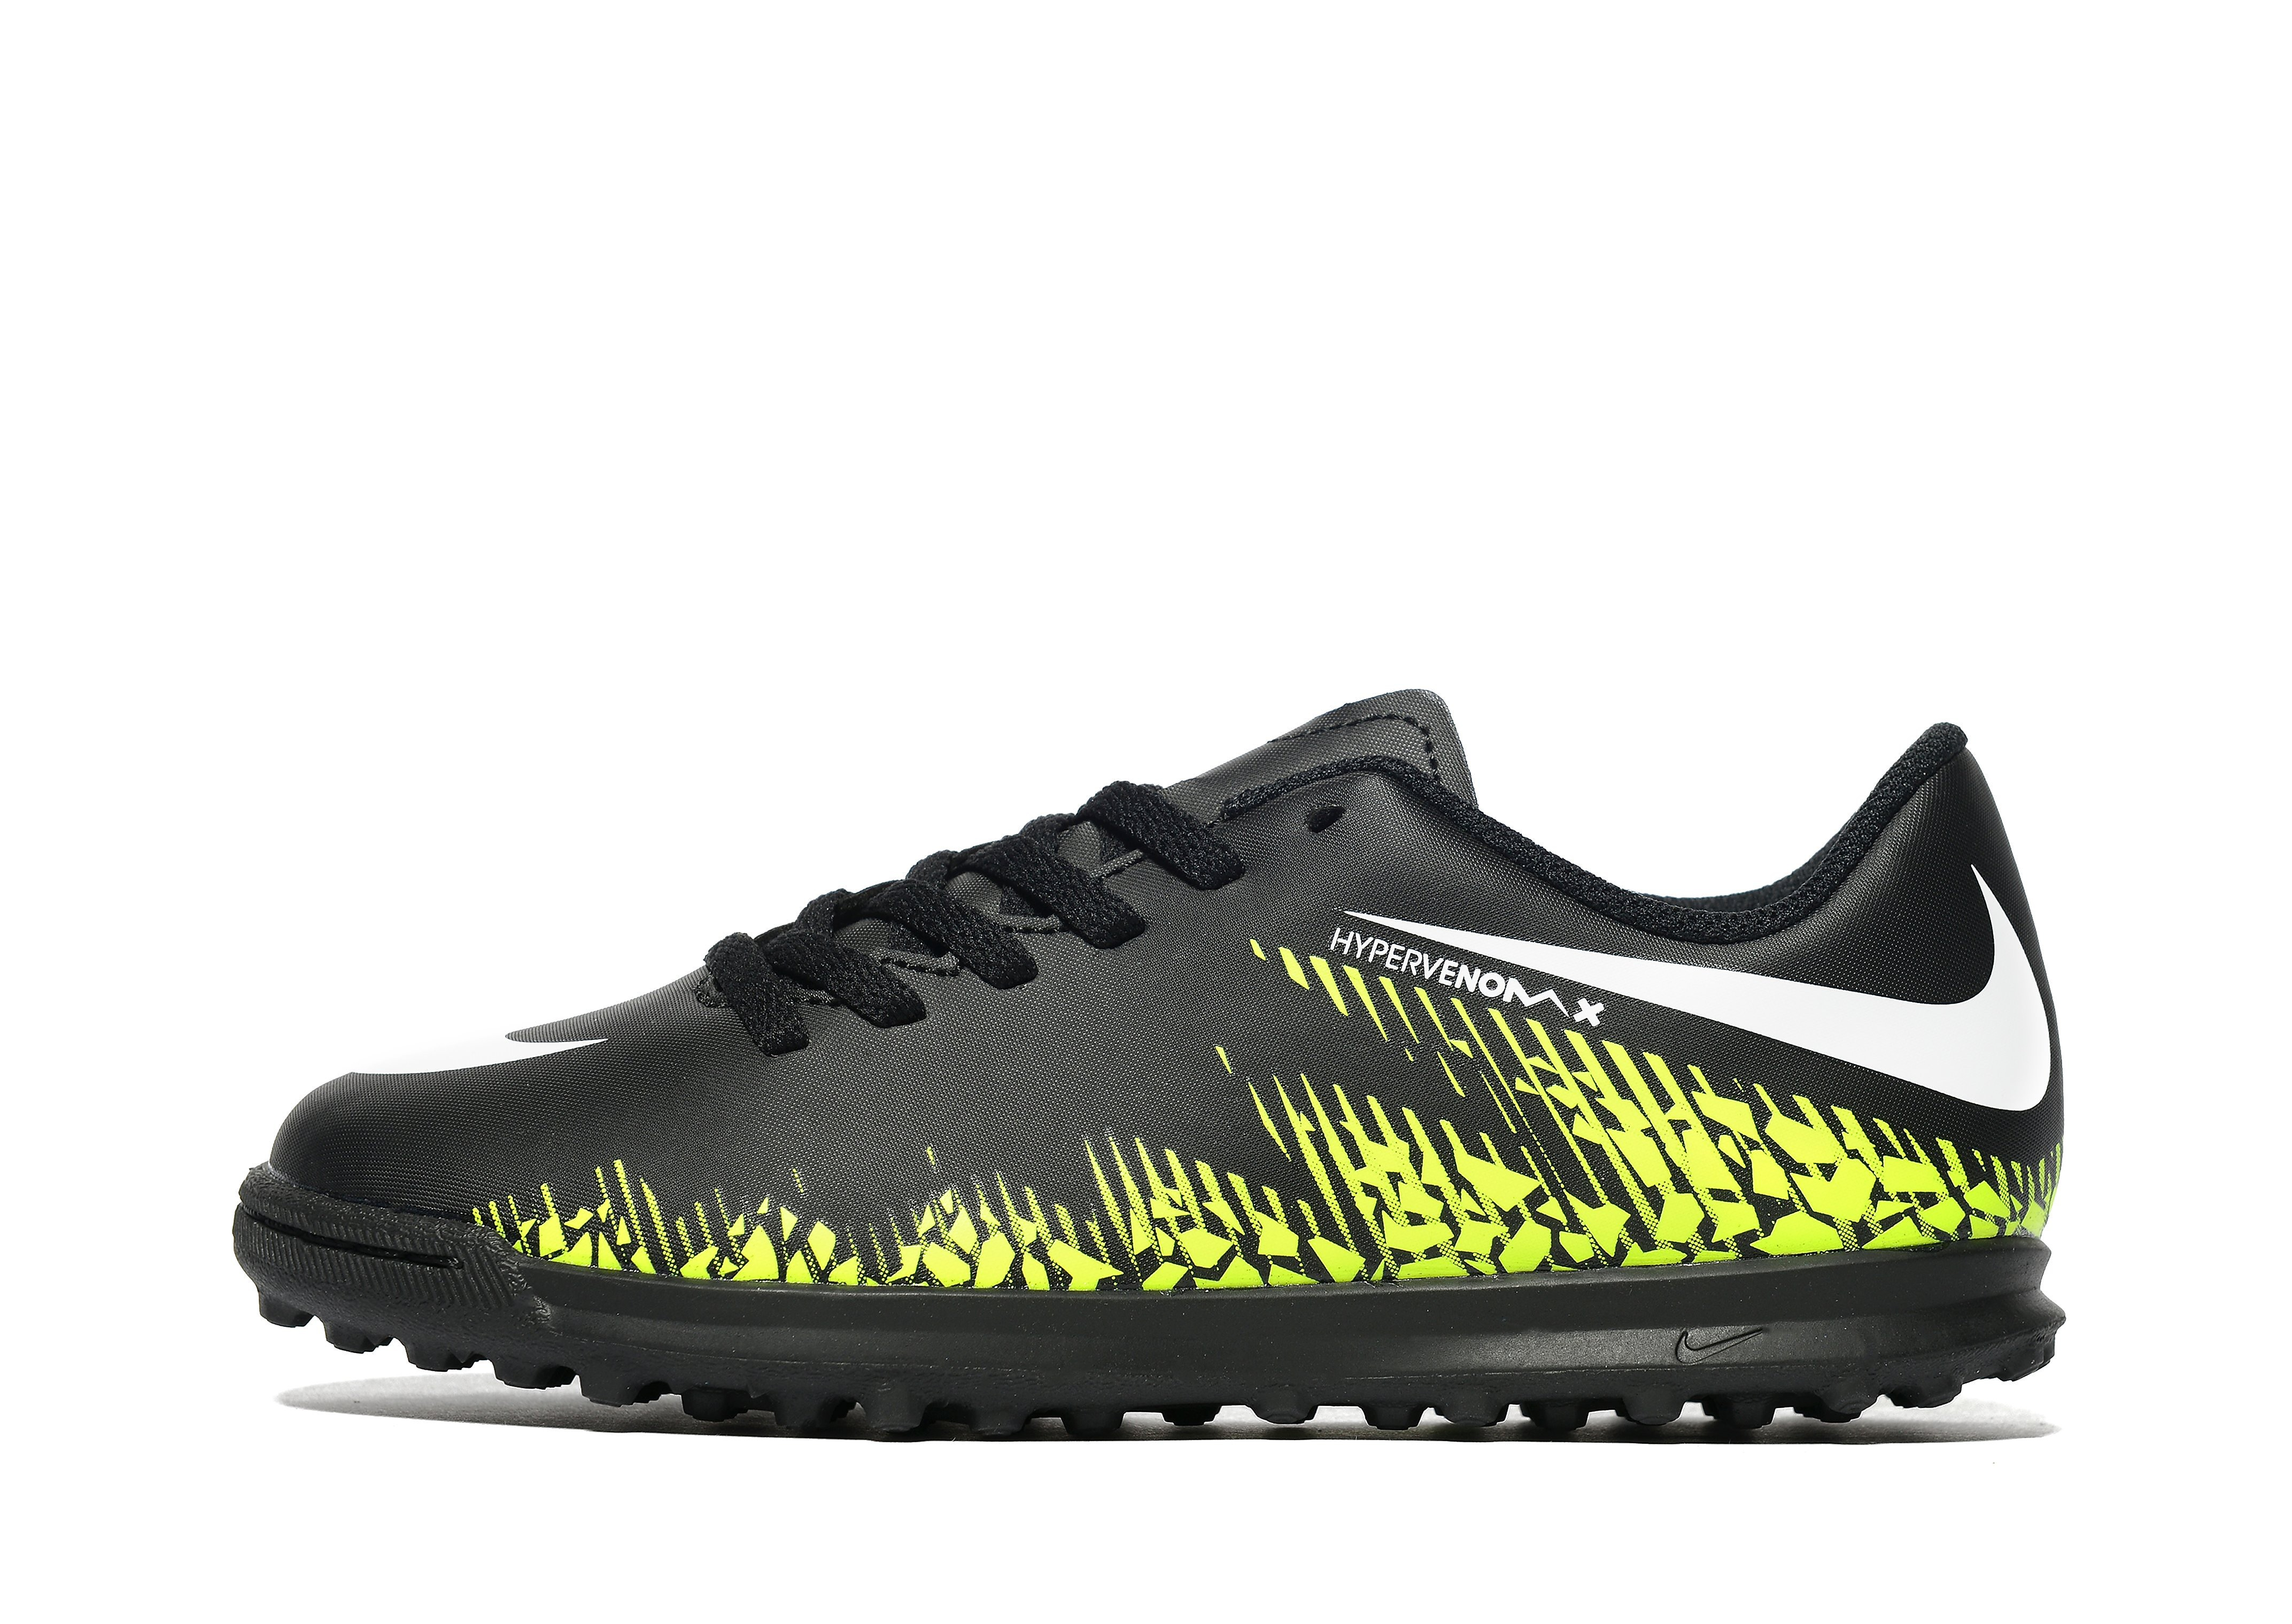 Nike Dark Lightning Hypervenom Phade II Turf Children